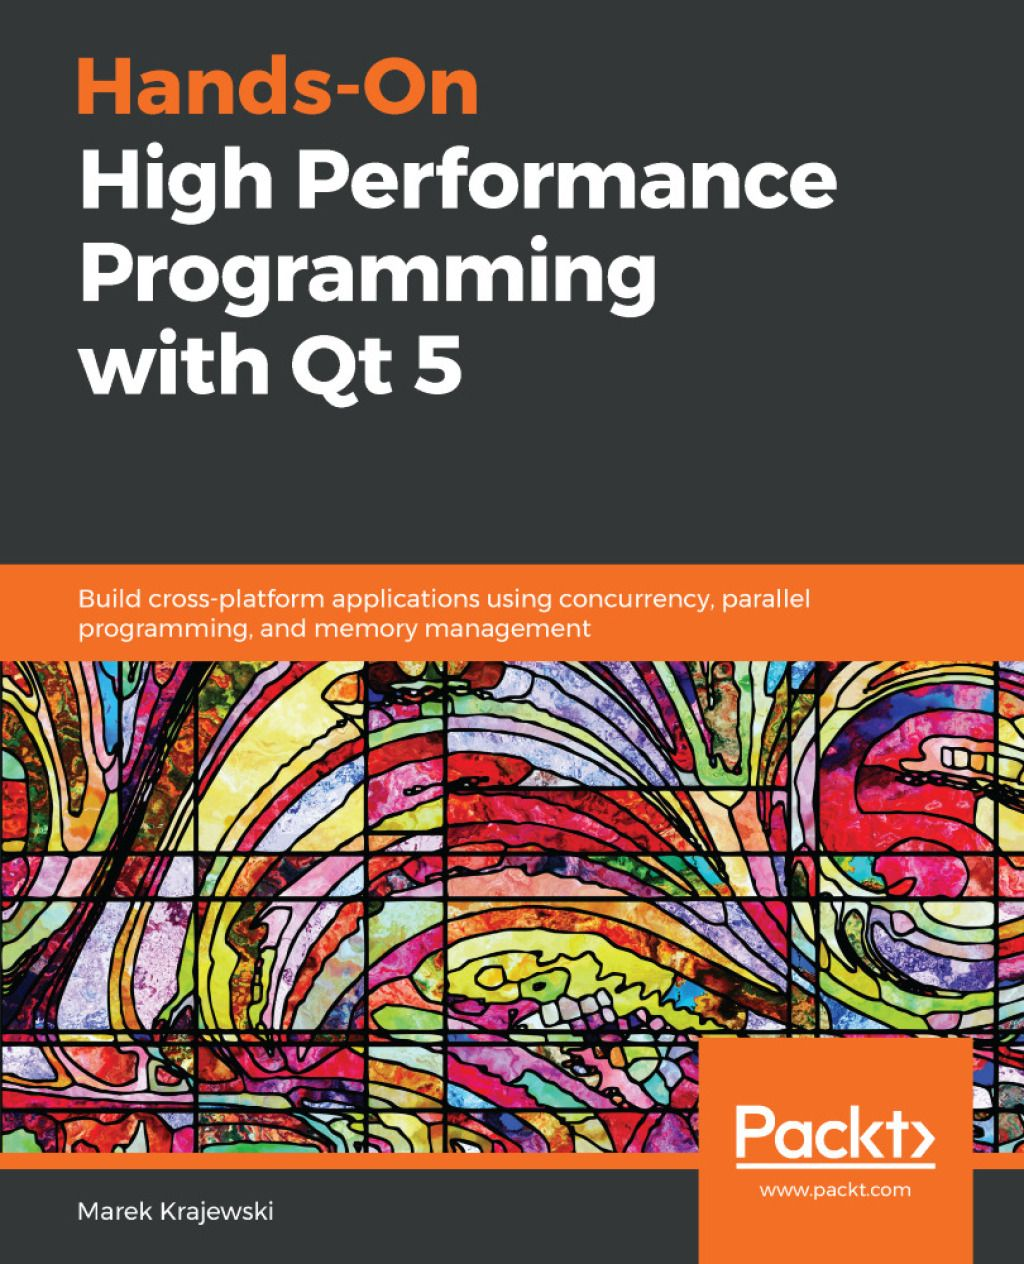 Hands-On High Performance Programming with Qt 5 (eBook